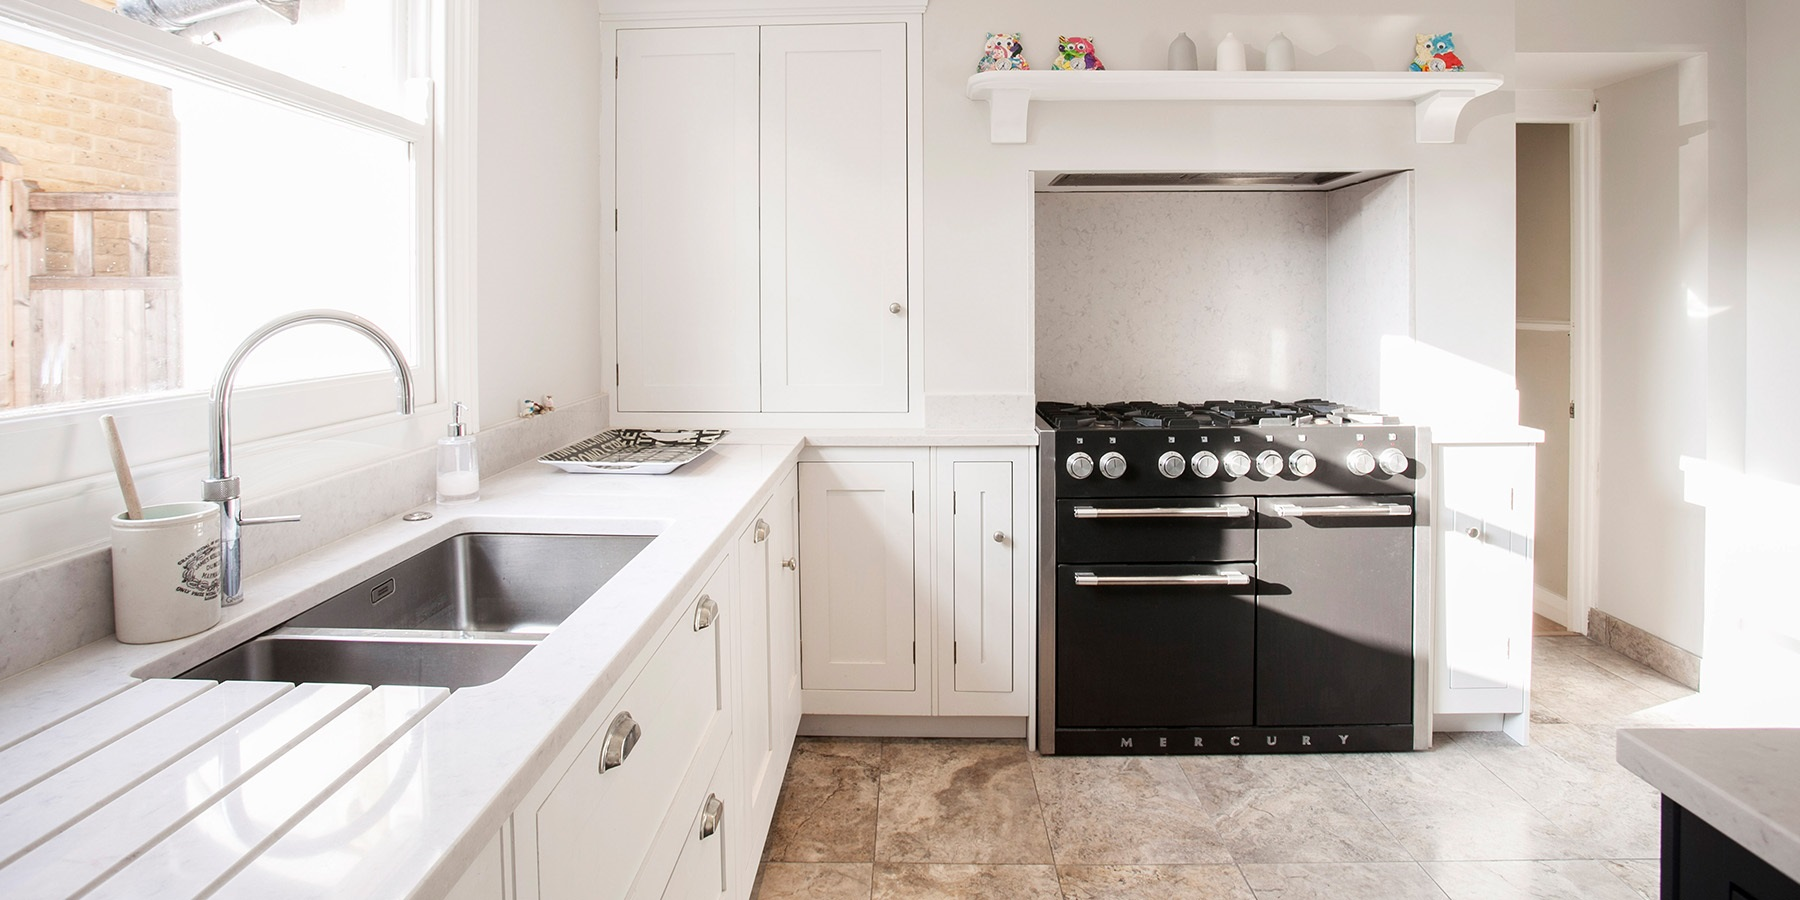 Handmade White Shaker Kitchen - Burlanes bespoke Hoyden kitchen cabinetry in white with white worktops, stainless steel sink and black Mercury range oven.